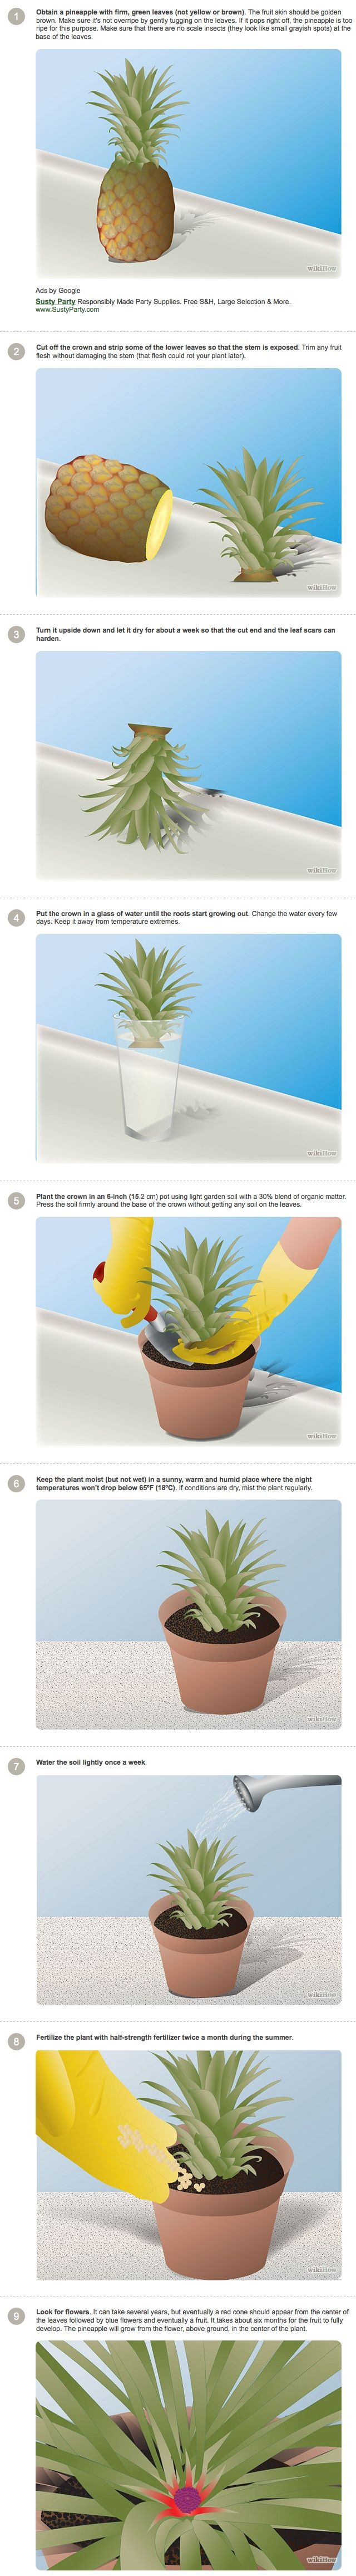 How to grow a pineapple tre